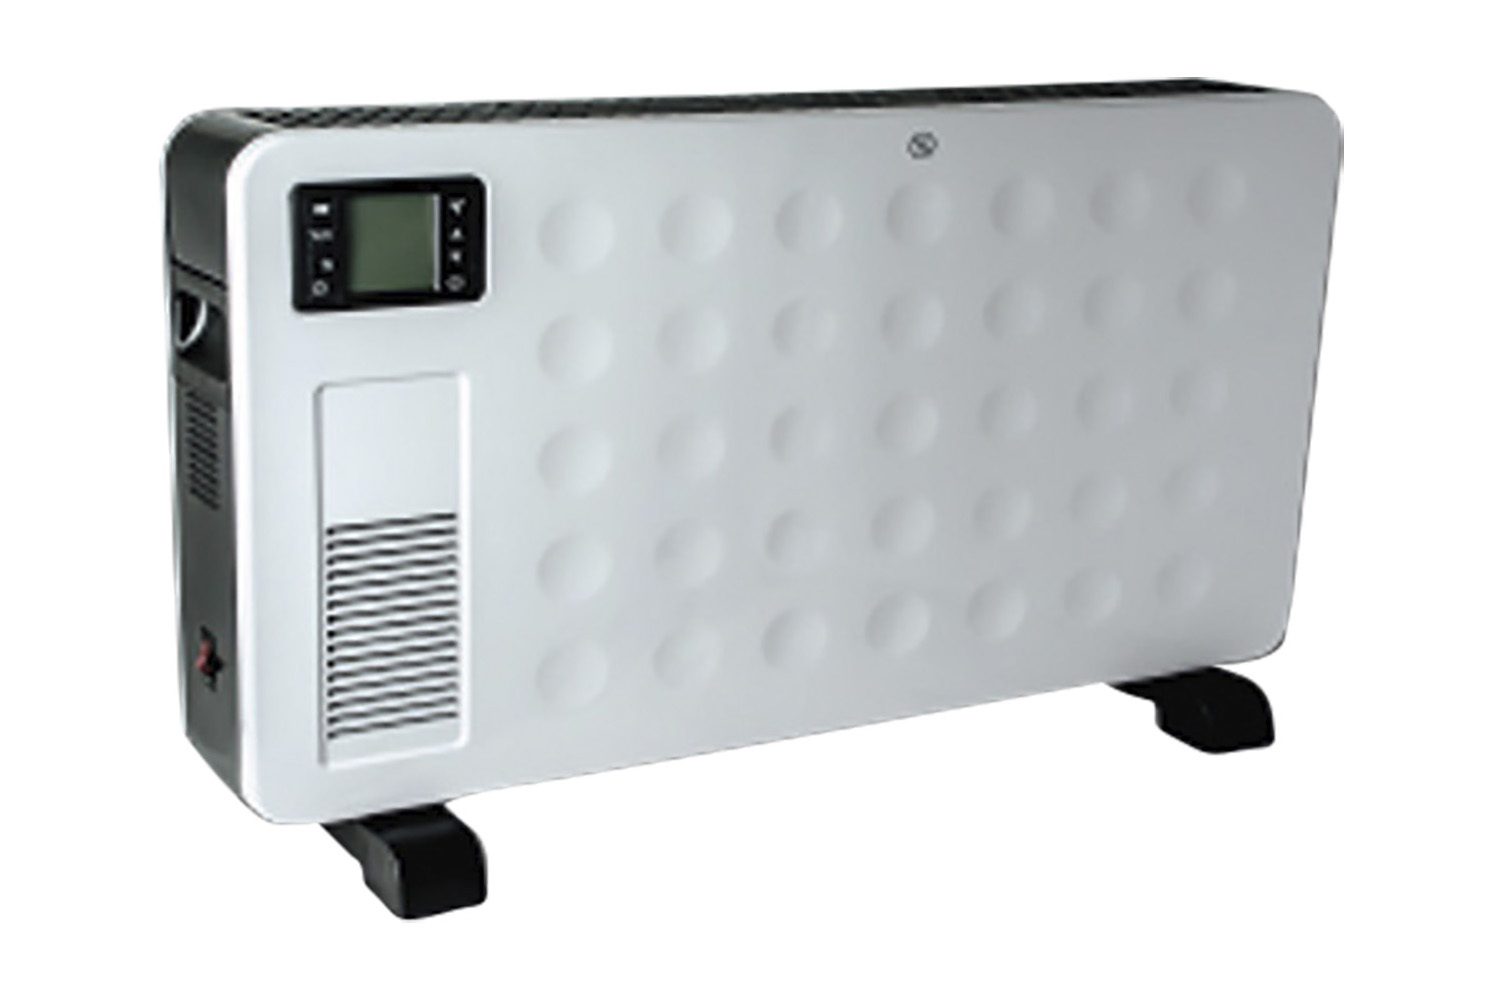 STATUS 2300w Portable Remote Controlled Convector Heater with 2 Heat Settings, Digital Display & Tim